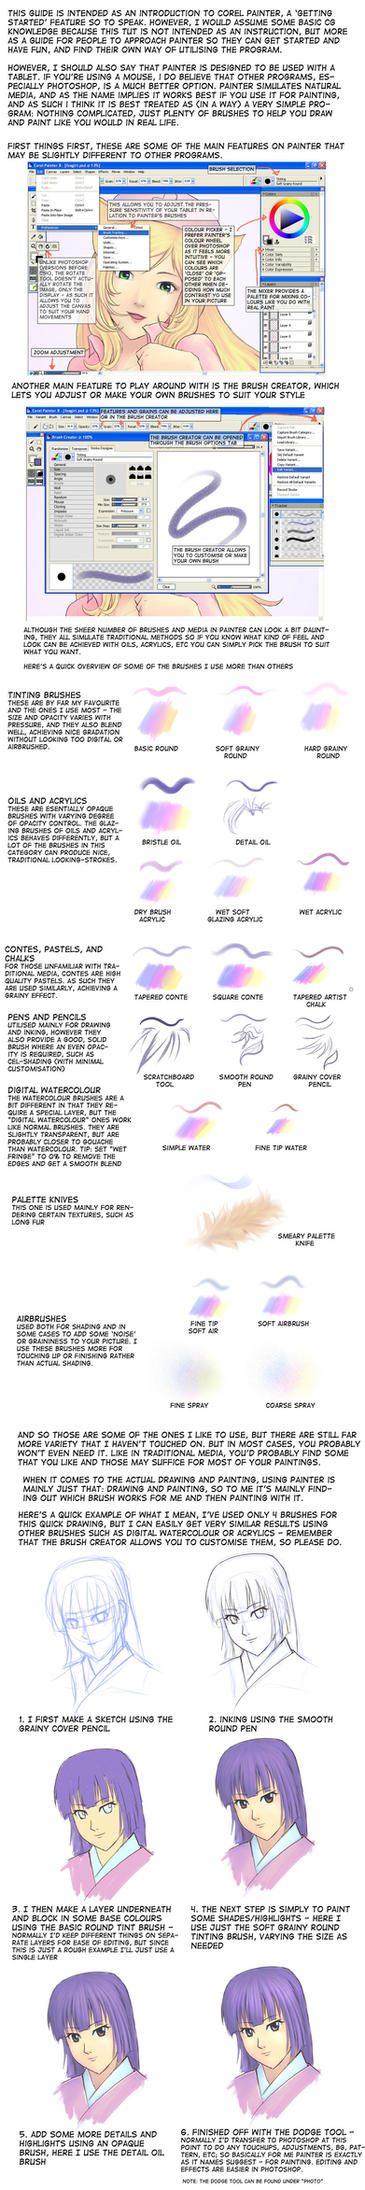 Tutorial - Painter basics by Serio555